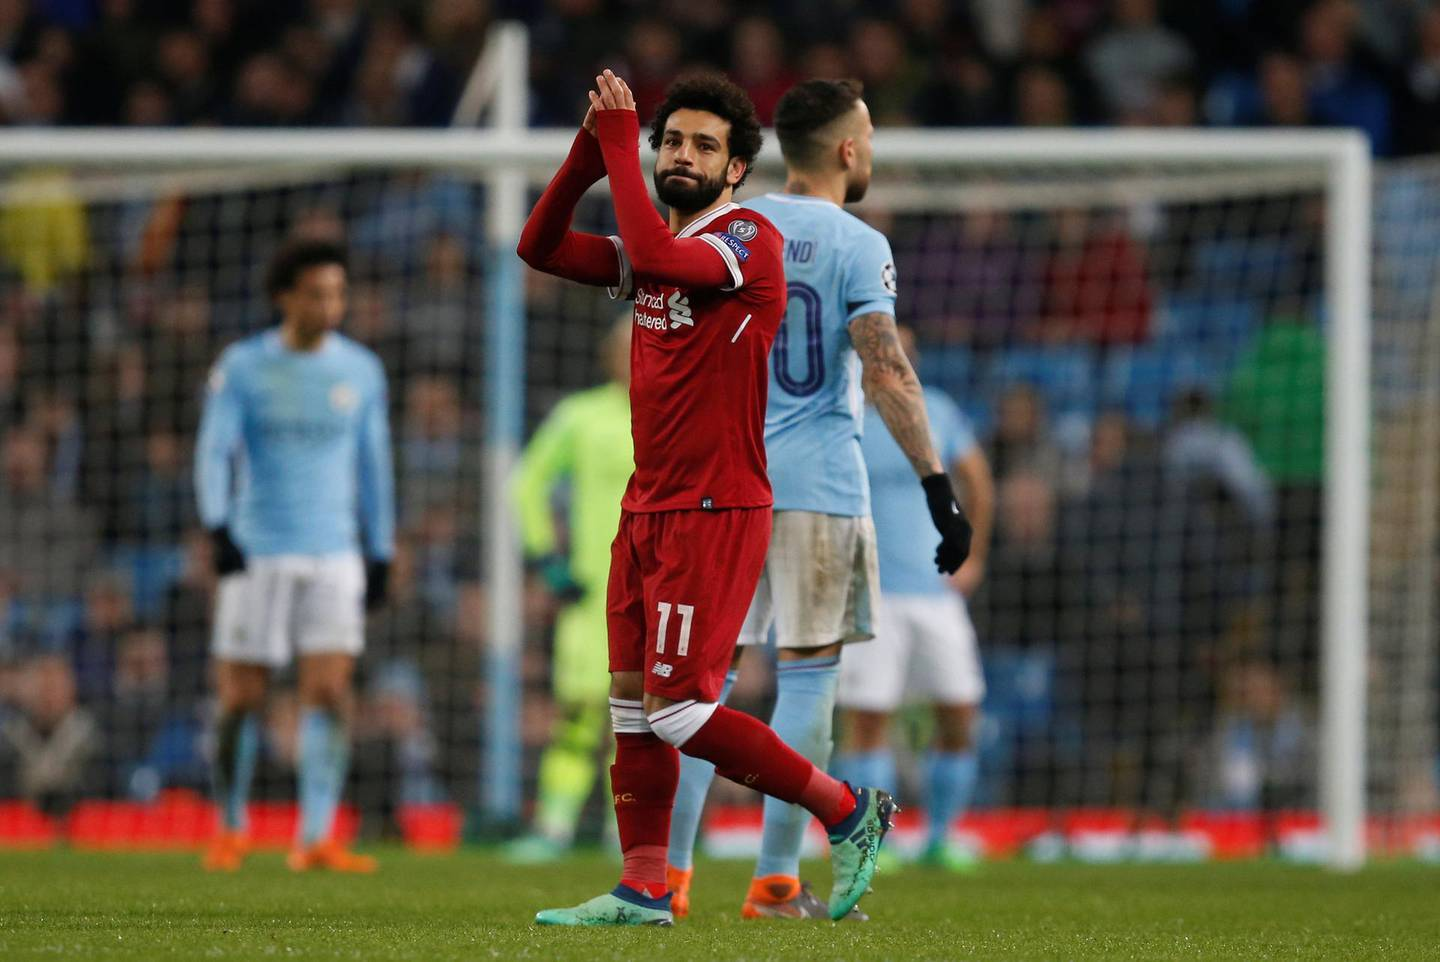 Soccer Football - Champions League Quarter Final Second Leg - Manchester City vs Liverpool - Etihad Stadium, Manchester, Britain - April 10, 2018   Liverpool's Mohamed Salah applauds fans as he walks off to be substituted   REUTERS/Andrew Yates